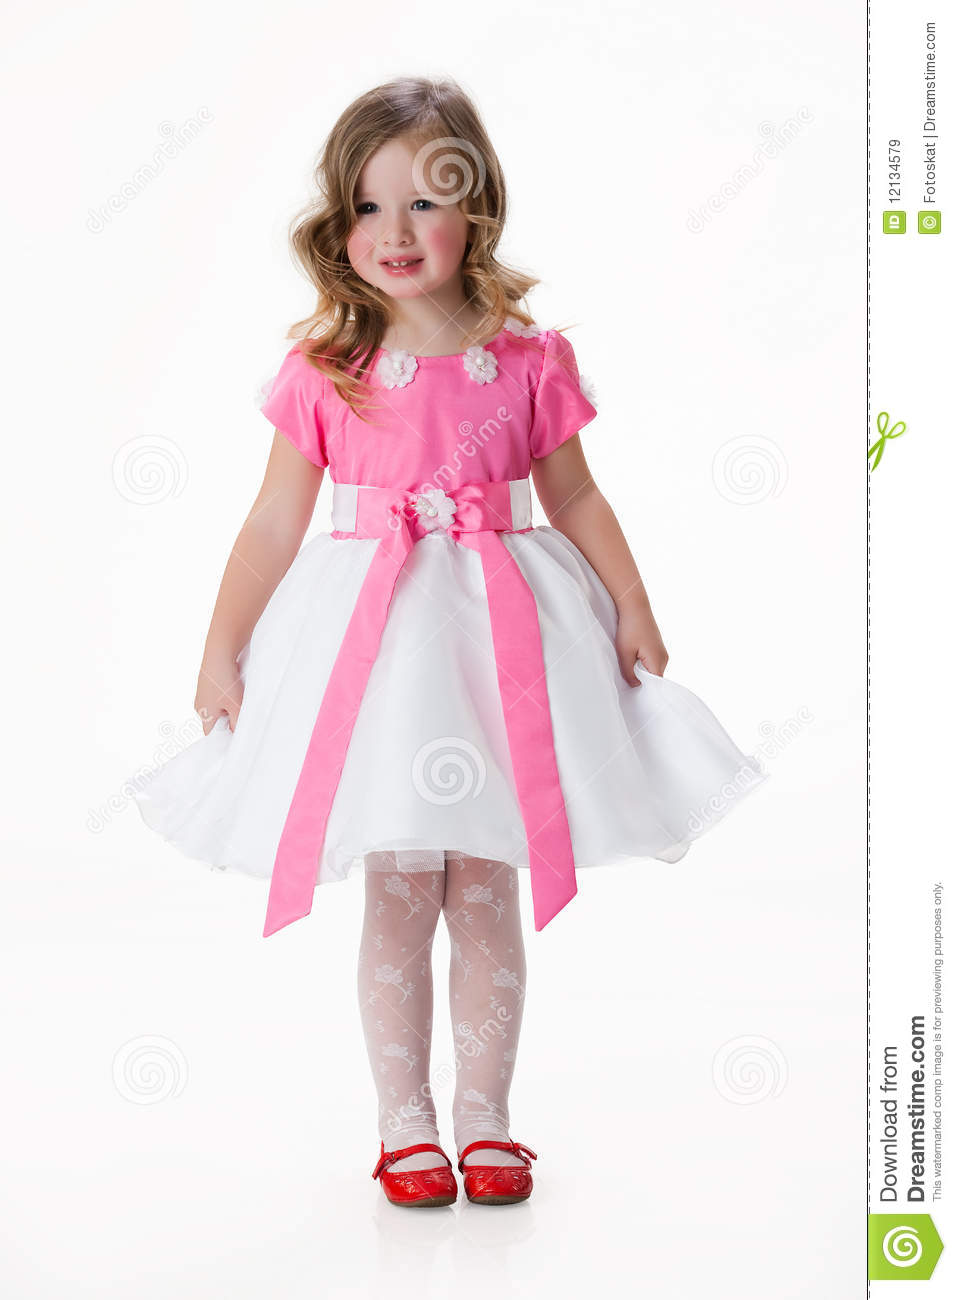 Find 50 listings related to Wholesale Little Girls Clothing in Los Angeles on manga-hub.tk See reviews, photos, directions, phone numbers and more for Wholesale Little Girls Clothing .